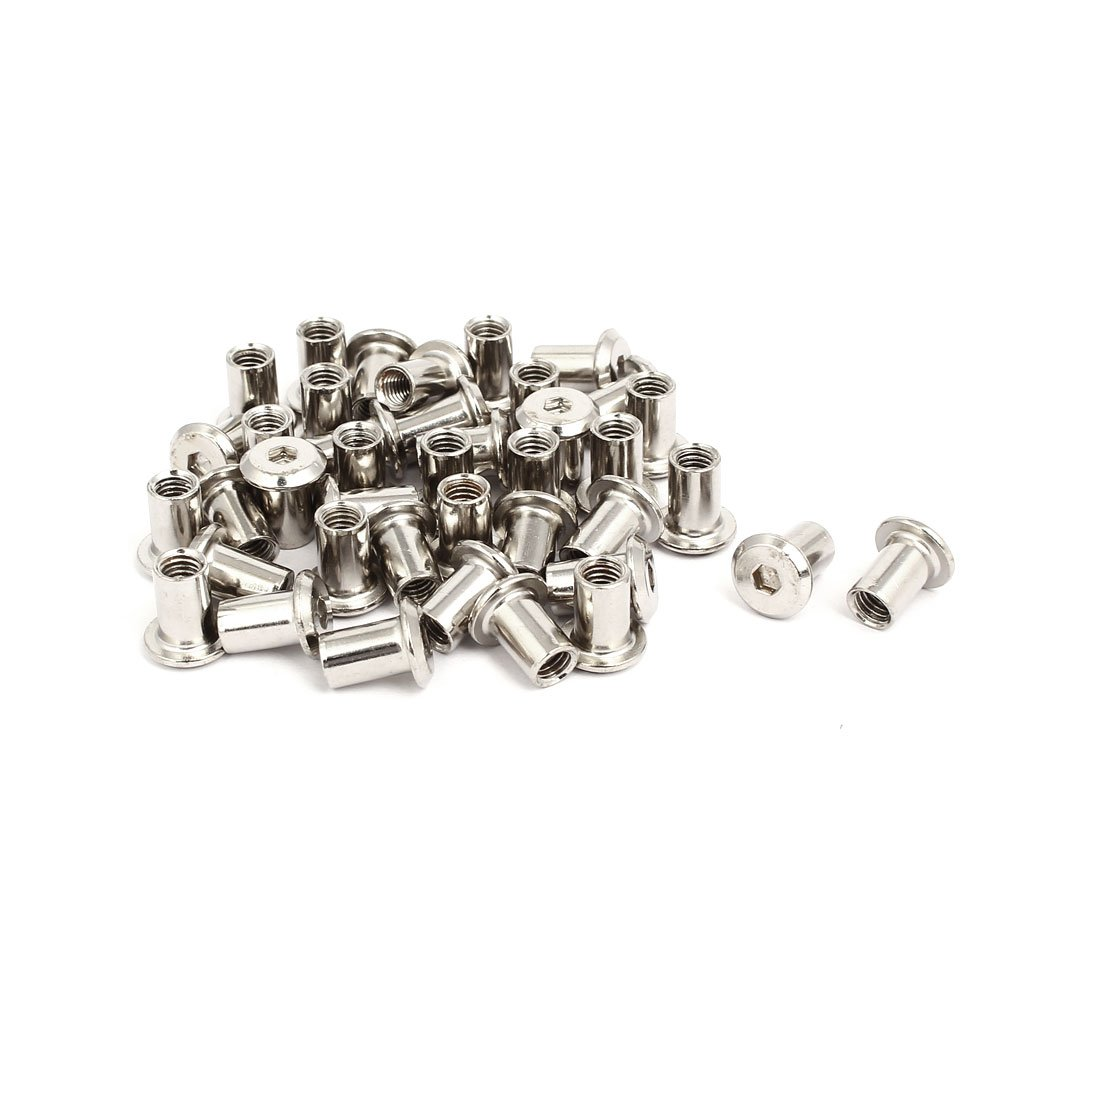 uxcell M6x12mm Female Thread Hex Socket Head Barrel Nut Furniture Fittings 40pcs